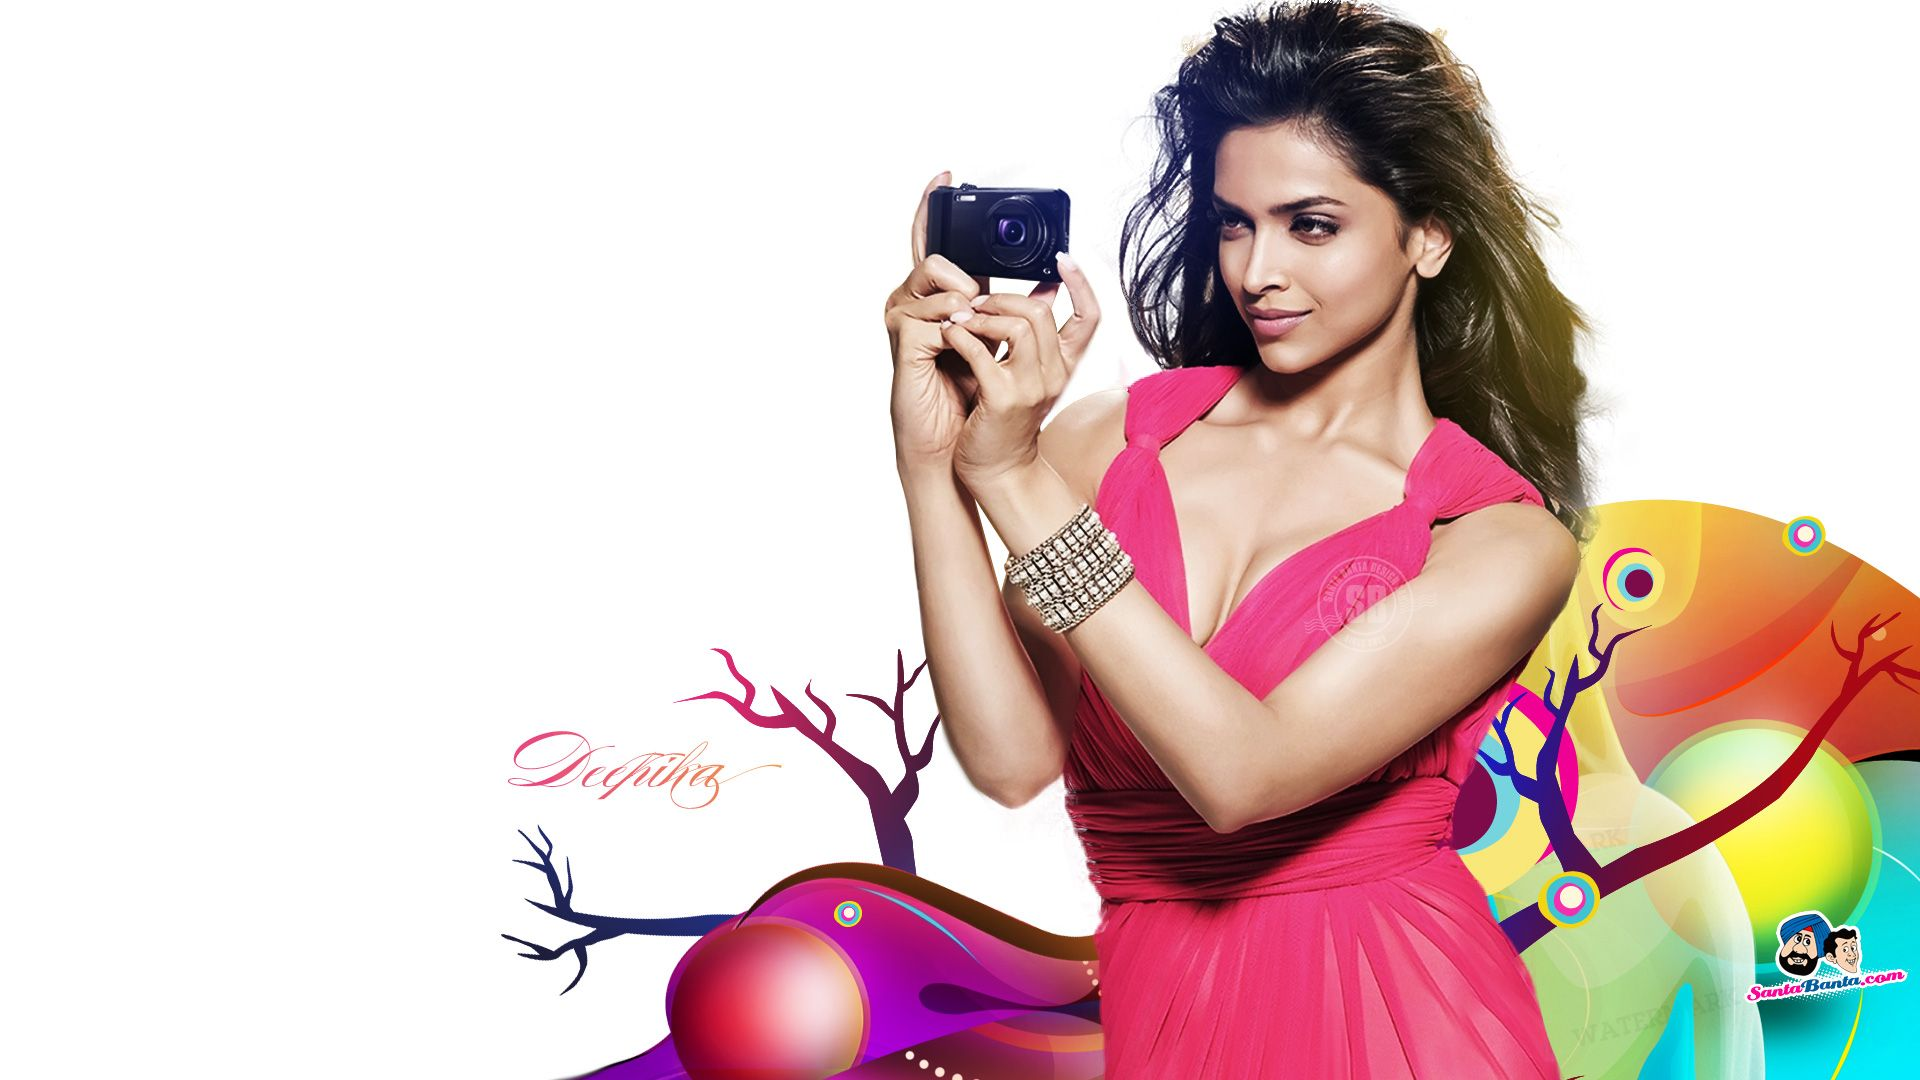 deepika padukone hot wallpaper | deepika padukone wallpapers